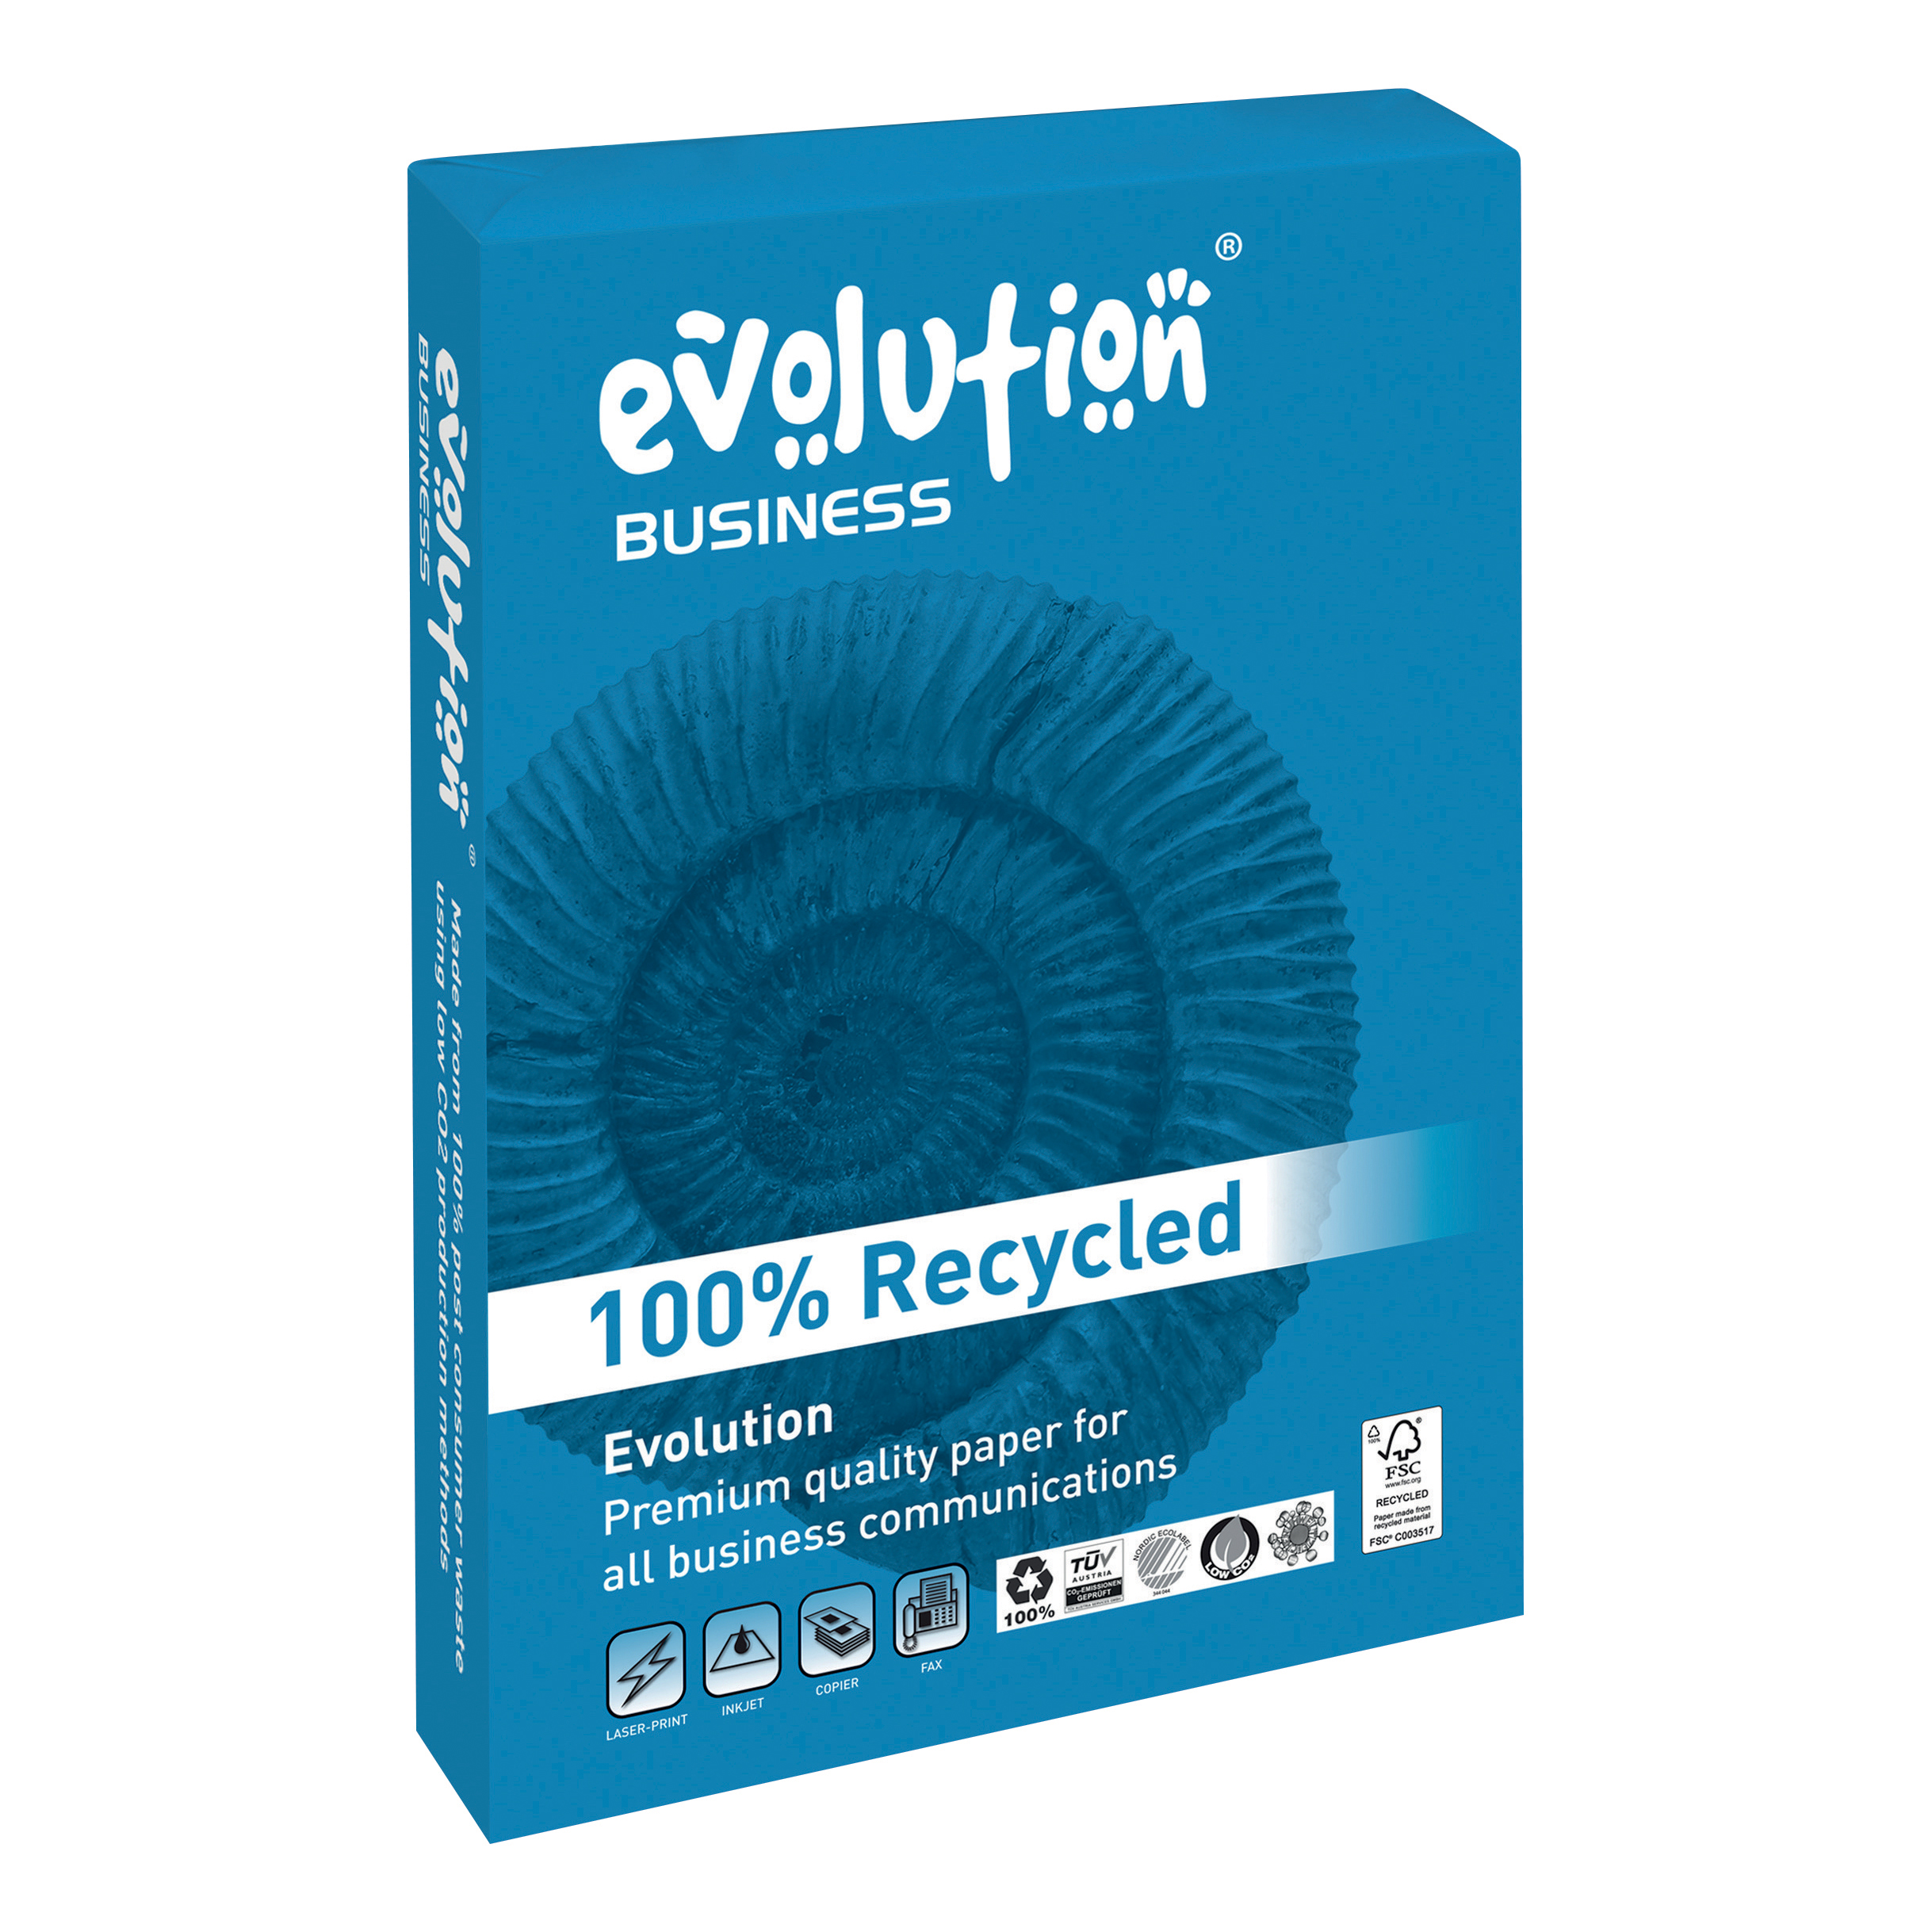 Evolution Business Recycled Paper 90gsm FSC A4 White Ref EVBU2109 [500 Sheets]